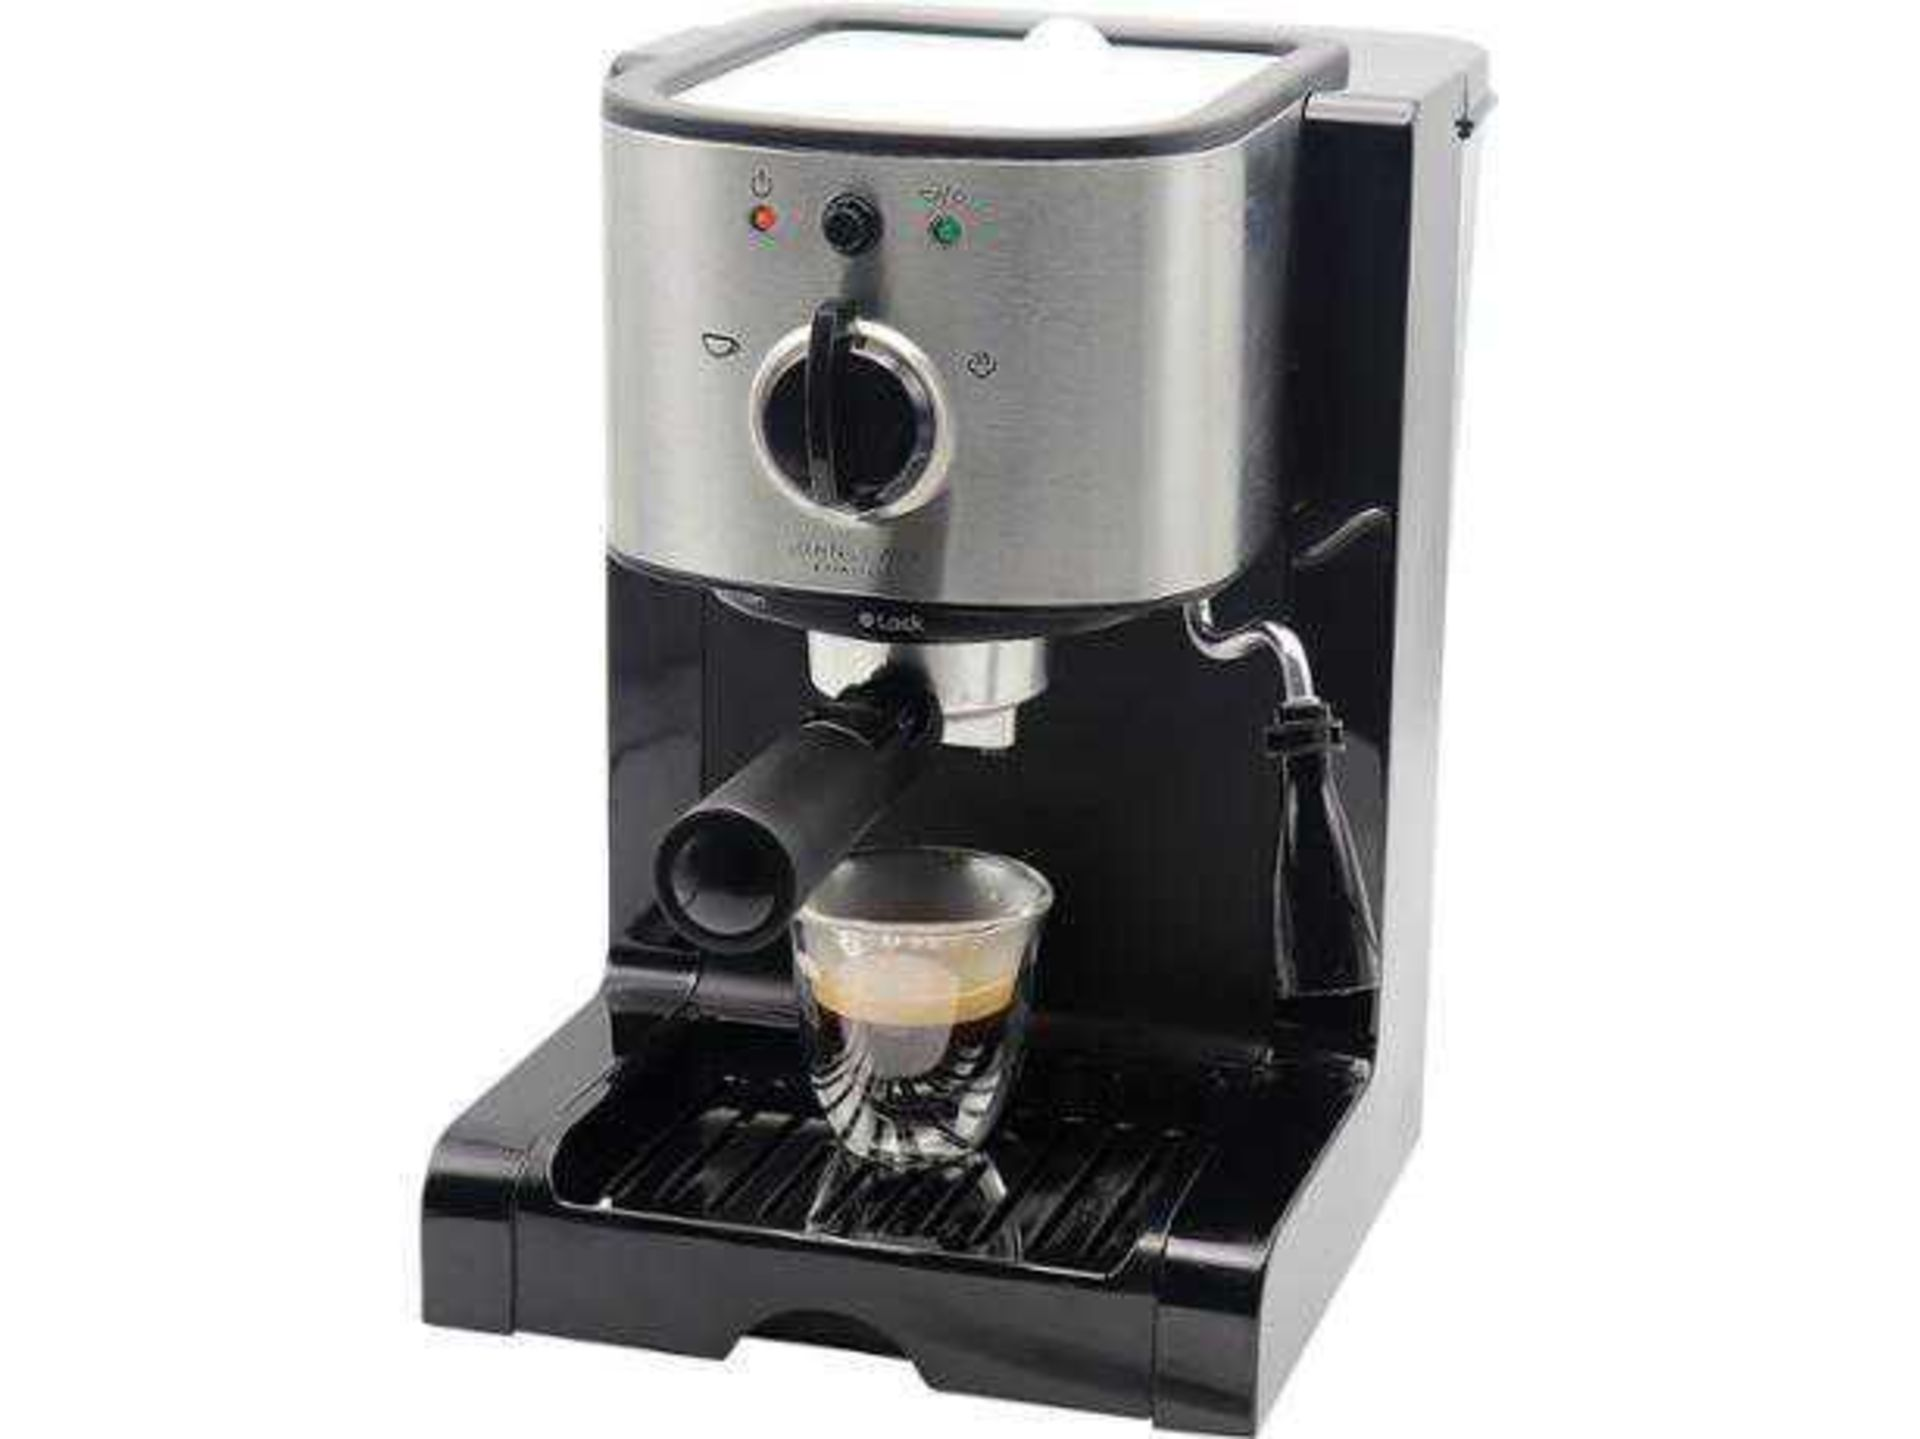 Lot 114 - RRP £70 Boxed John Lewis Pump Espresso Coffee Machine Stainless Steel